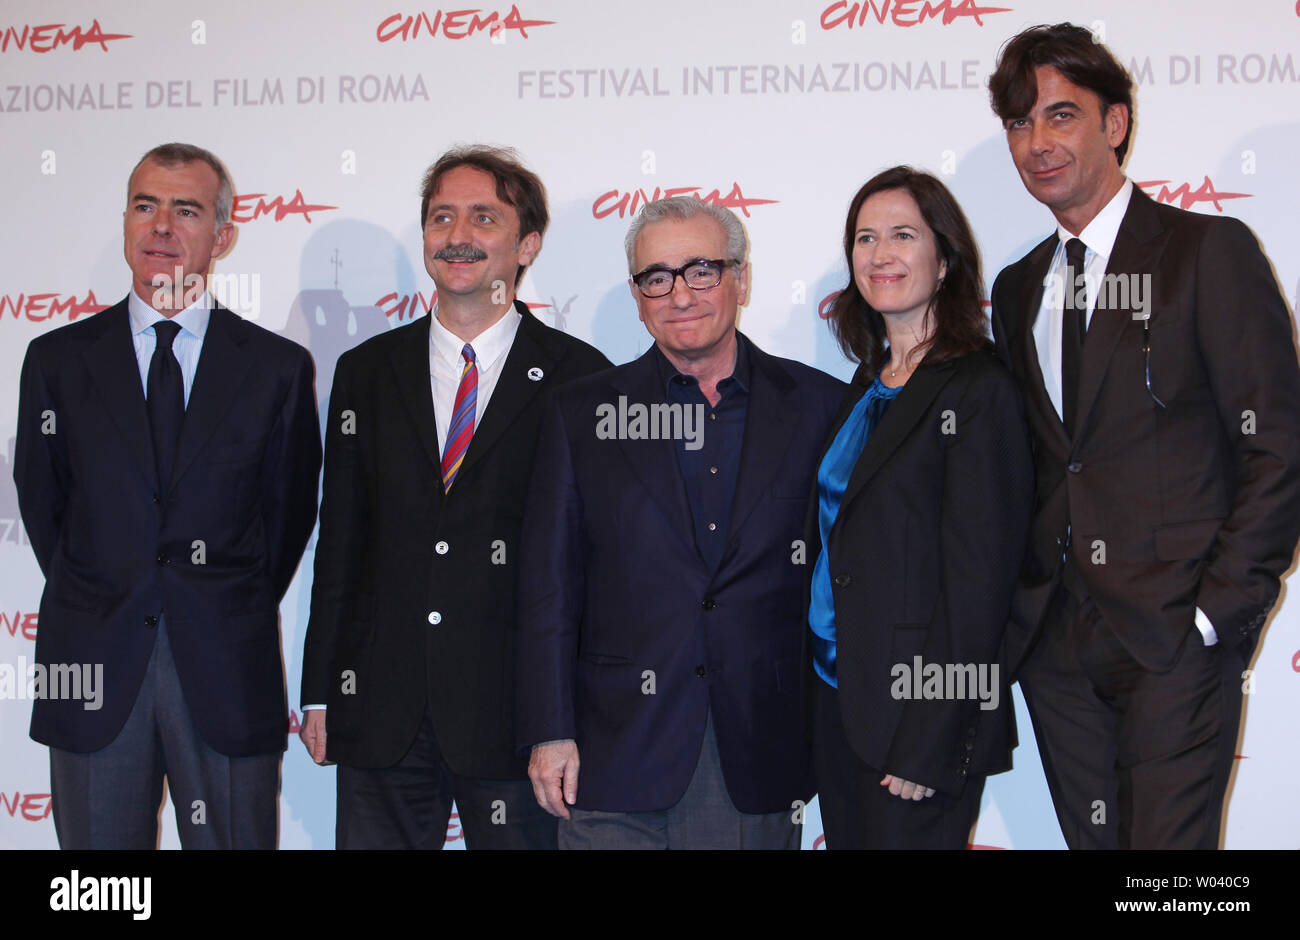 Martin Scorsese (C) and a delegation from the film 'La Dolce Vita' arrive at a photocall during the 5th Rome International Film Festival in Rome on October 30, 2010.  Scorsese was in Rome to officially present a digitally restored version of the 1960 classic film.   UPI/David Silpa - Stock Image